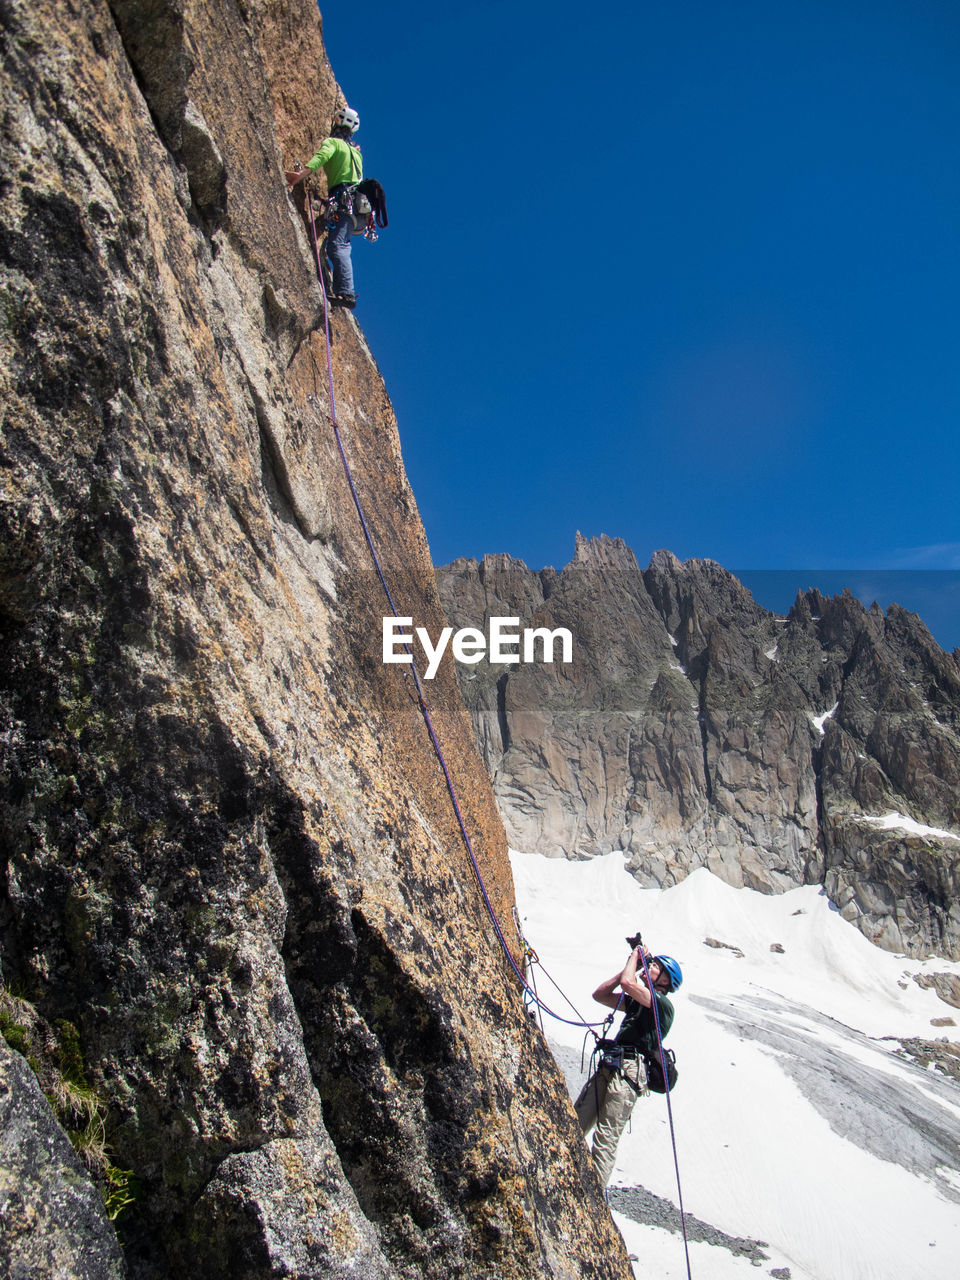 adventure, rock - object, rock climbing, real people, rope, climbing, risk, low angle view, mountain, men, leisure activity, day, skill, extreme sports, lifestyles, vitality, full length, cliff, healthy lifestyle, young men, outdoors, helmet, courage, climbing rope, challenge, sport, young adult, nature, rock face, clear sky, headwear, only men, adult, sky, adults only, people